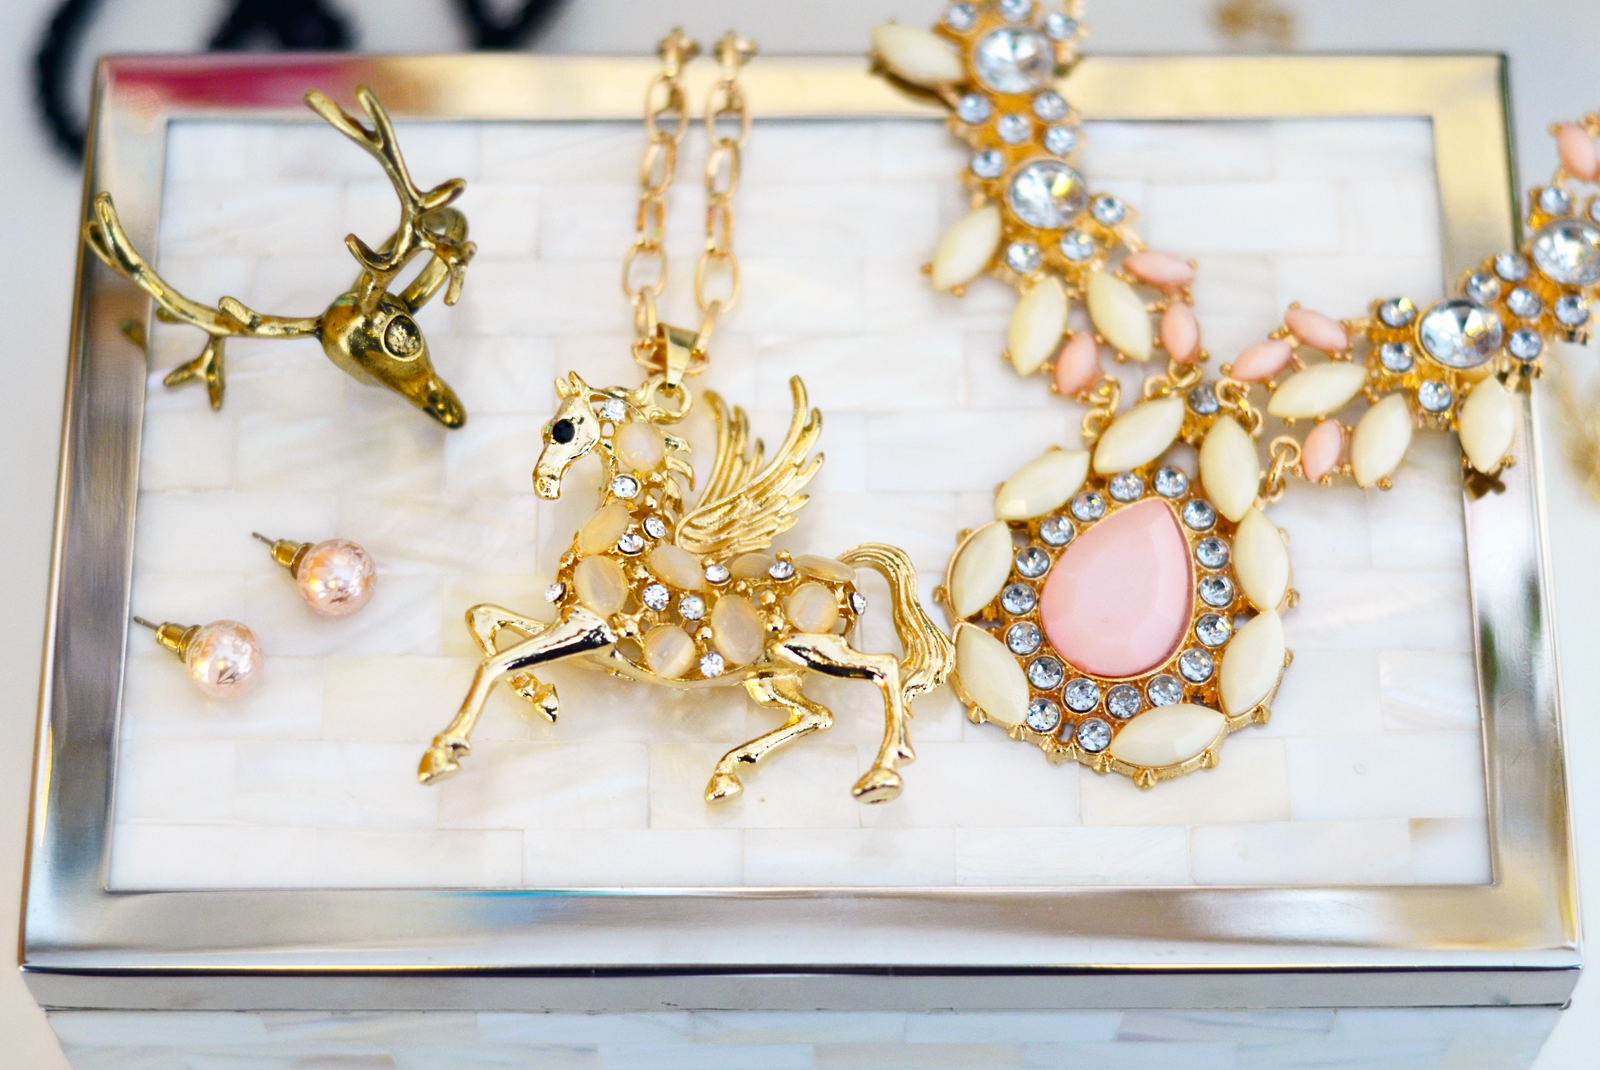 Gold fashion skull, unicorn jewellery. How to clean and care for your jewellery